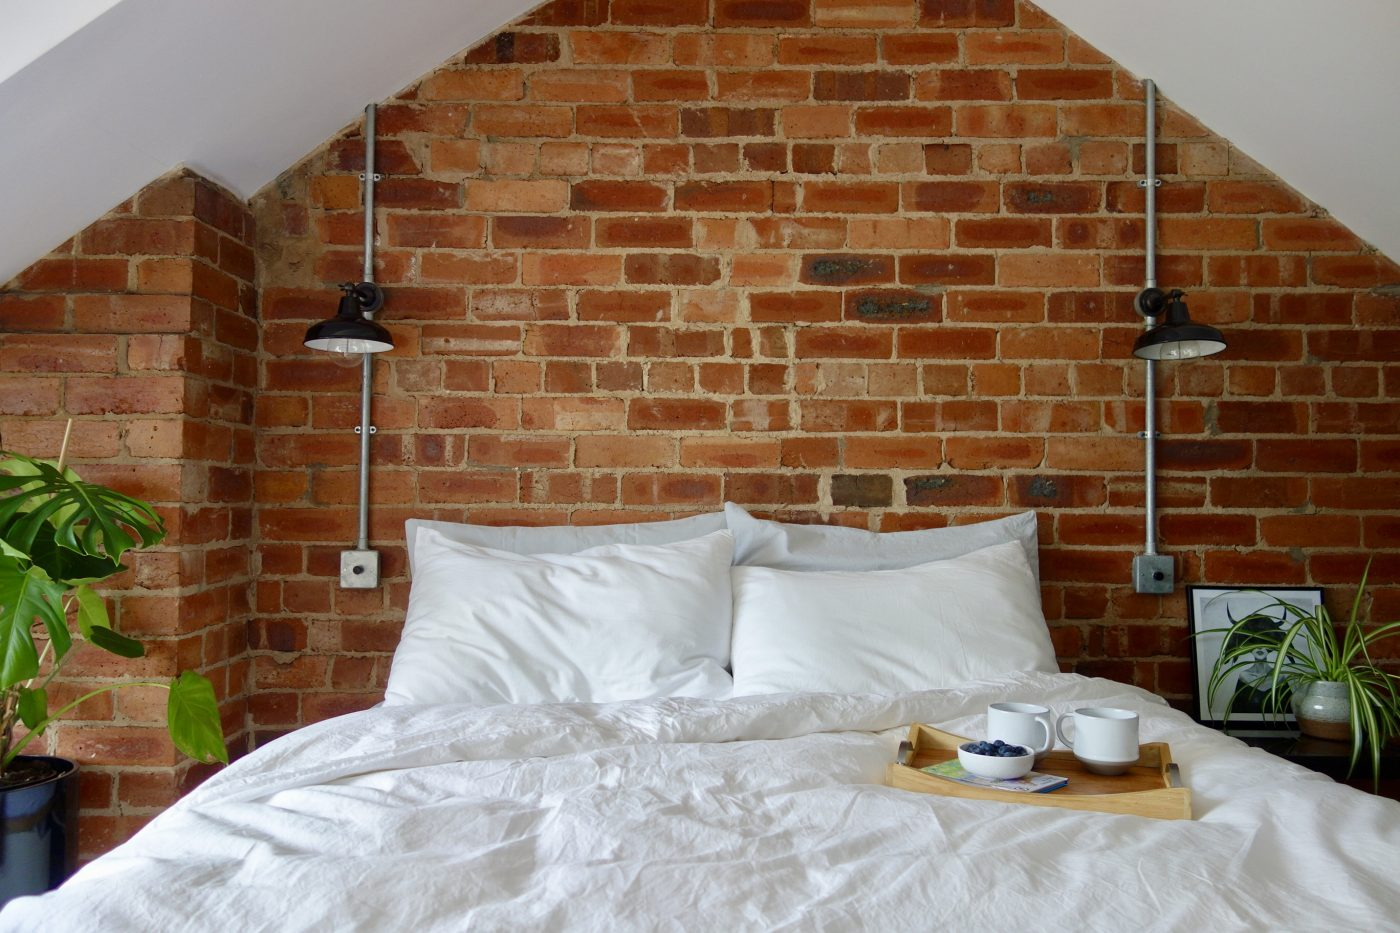 Planning a build? When do you get an interior designer on board?